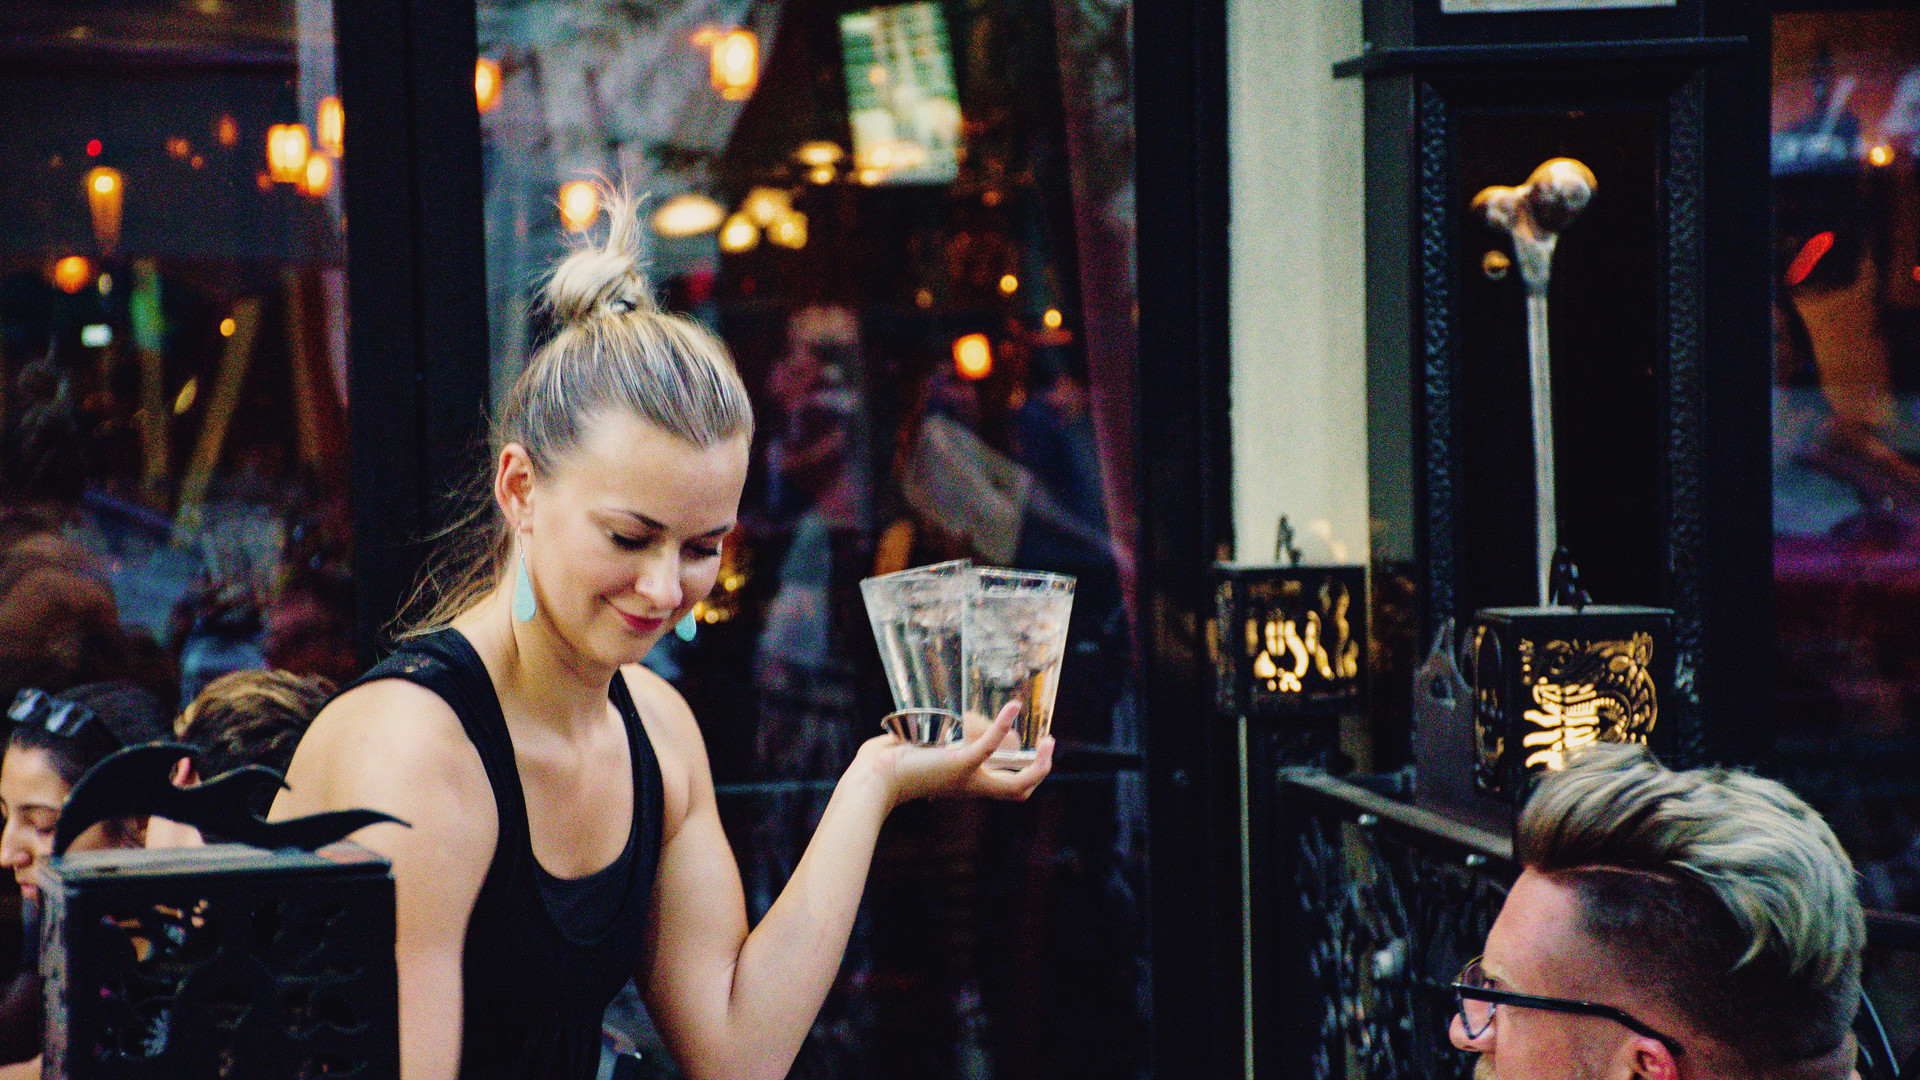 woman-holding-higball-glass-in-front-of-